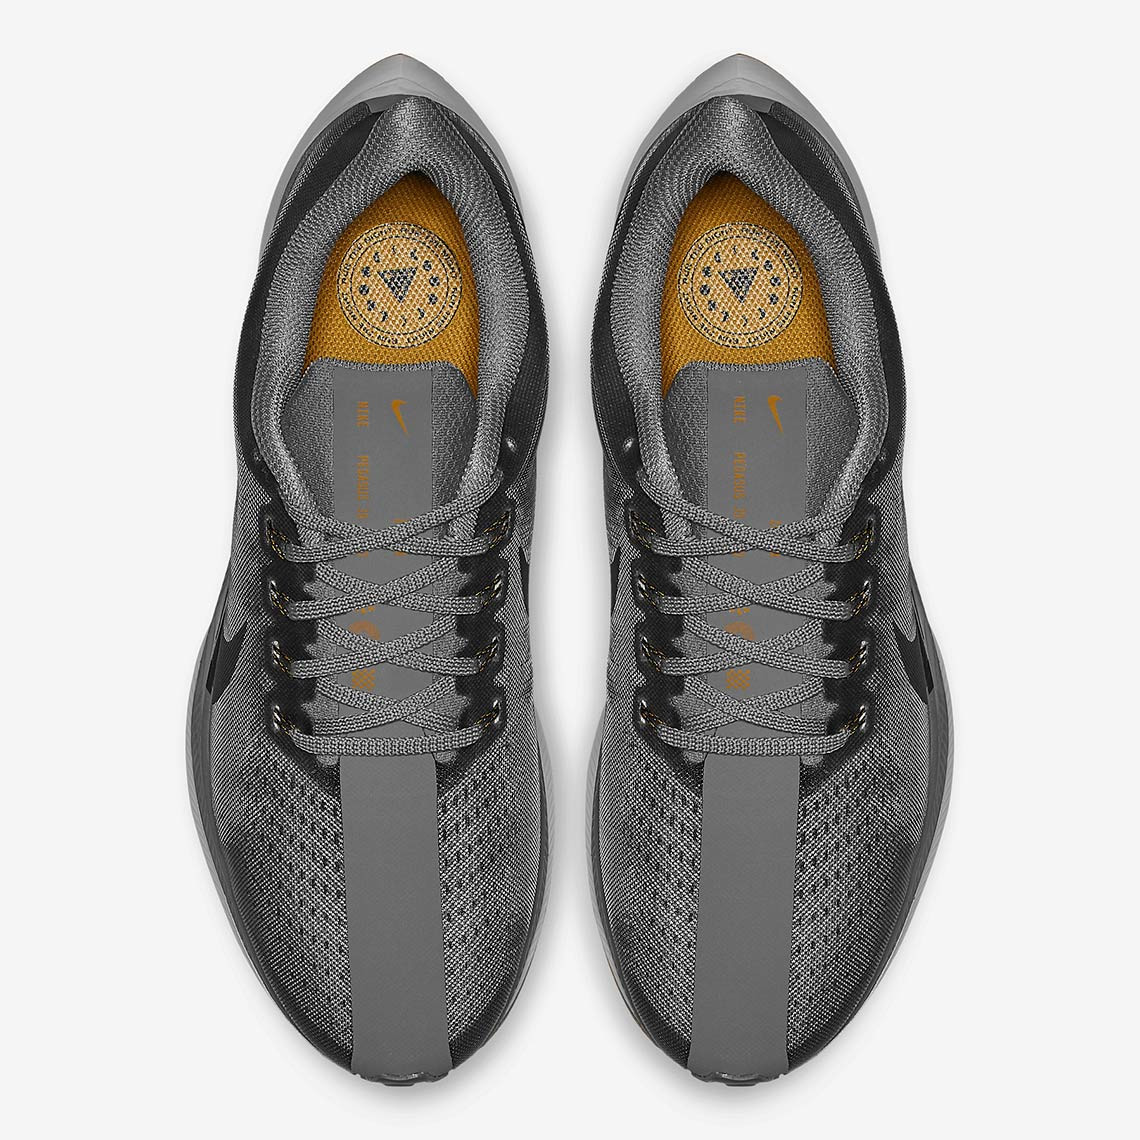 070f710fc433 Shades Of Grey Come To The Nike Zoom Pegasus 35 Turbo